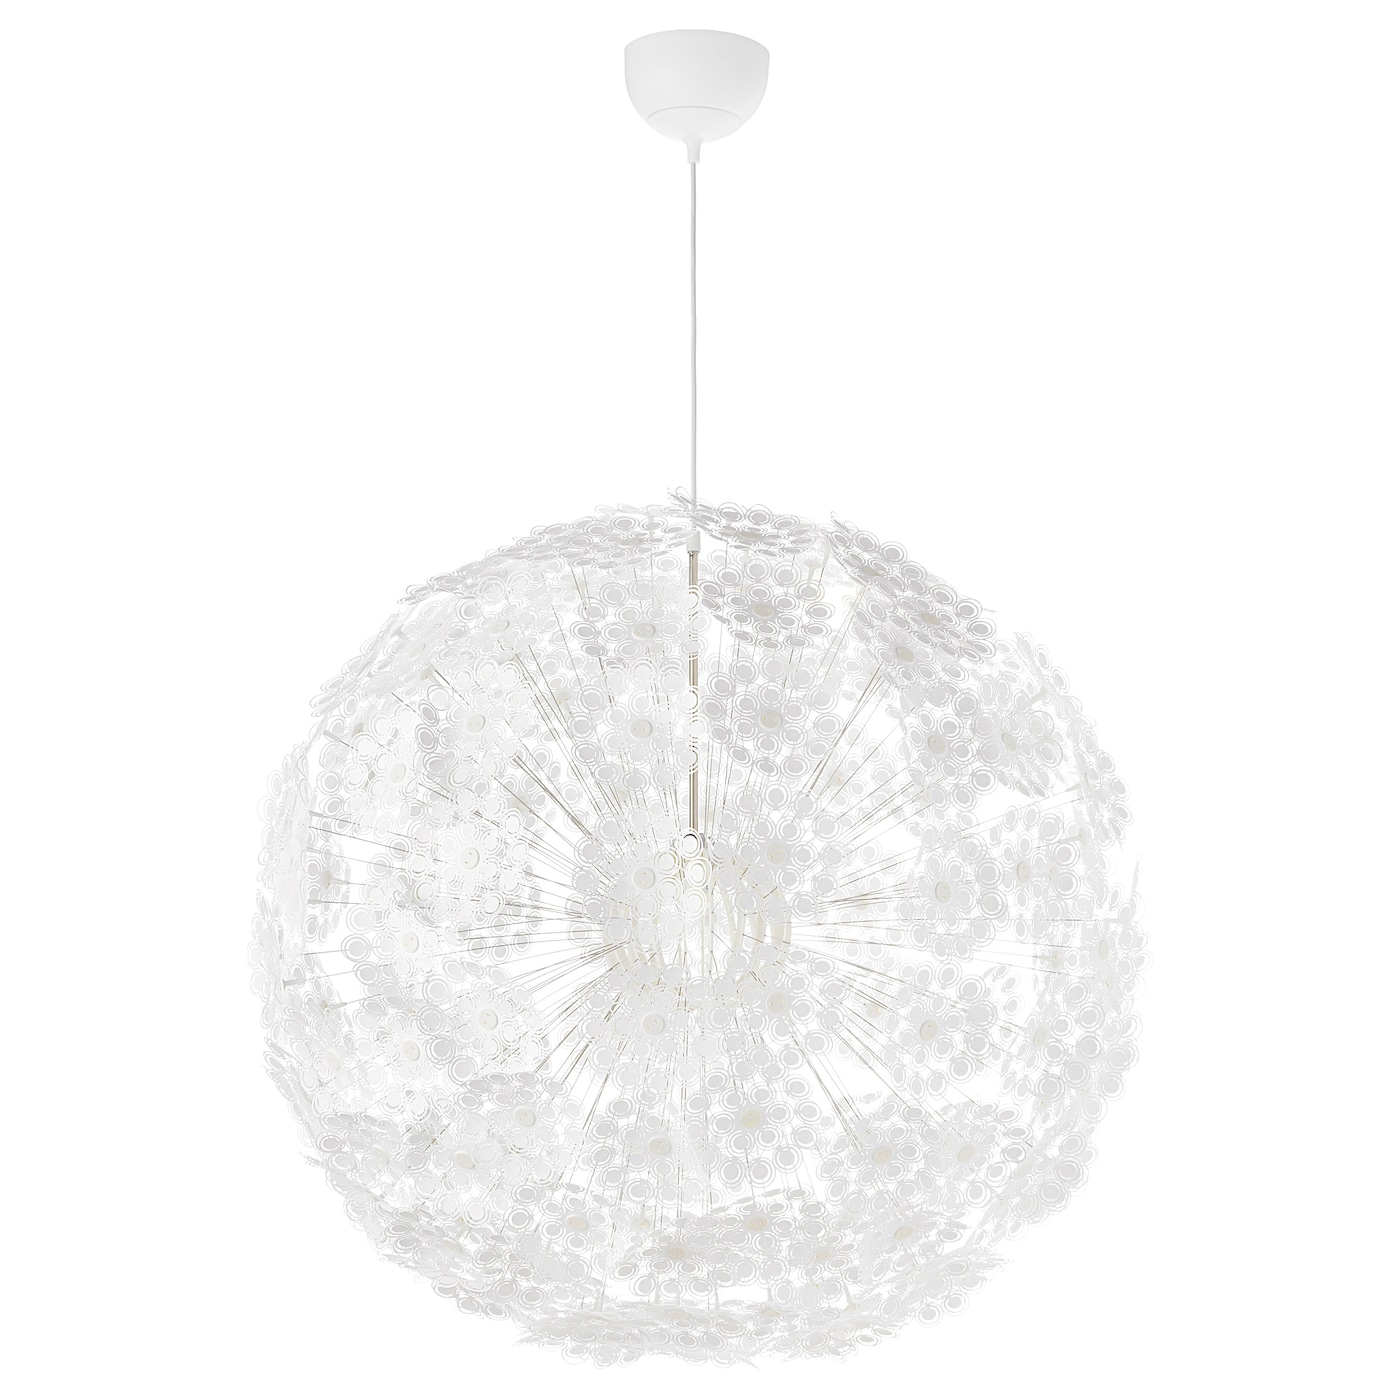 Ikea GrimsÅs Pendant Lamp Gives Decorative Patterns On The Ceiling And Wall